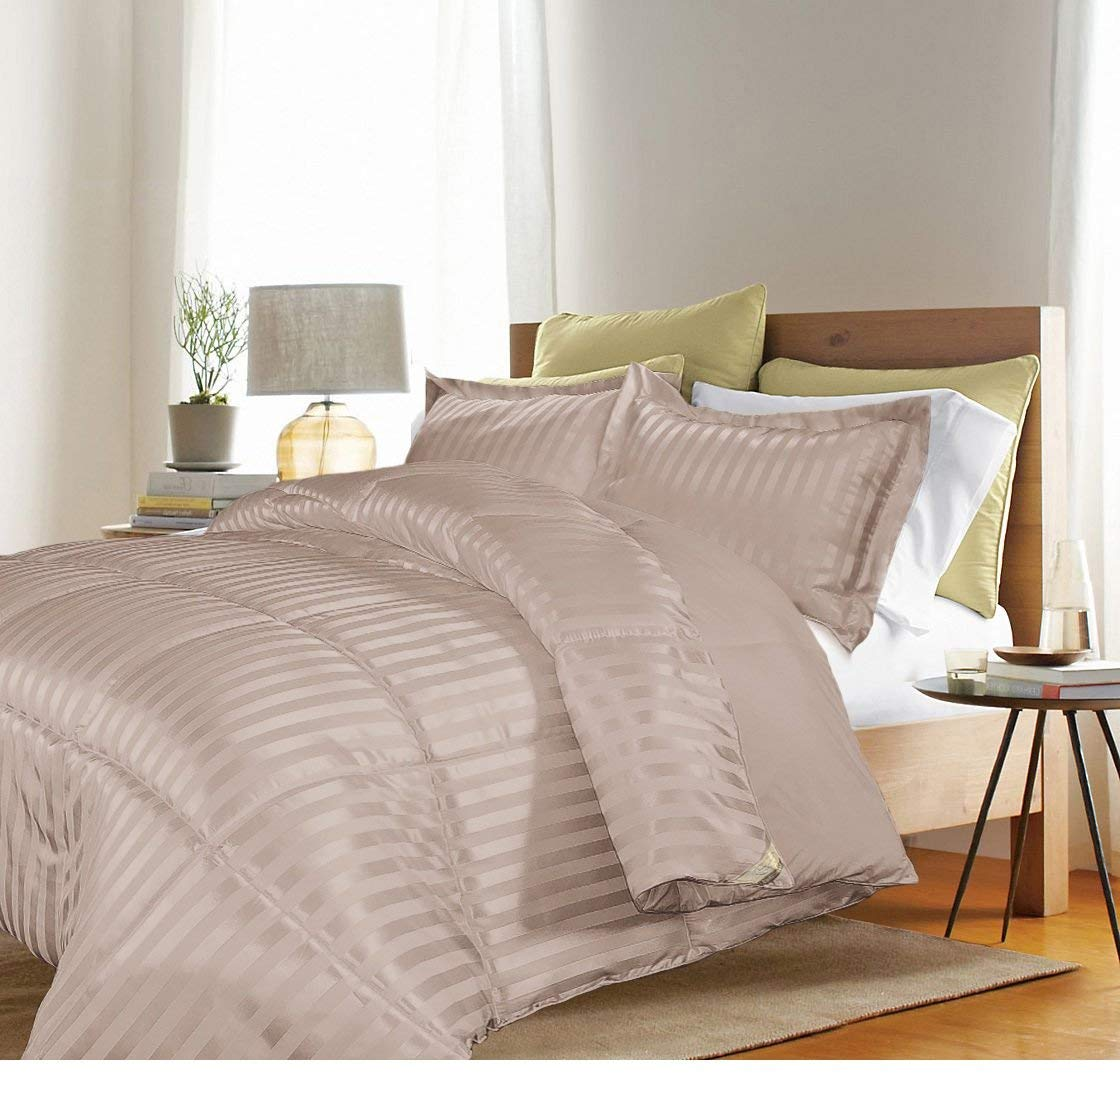 3 Piece Full Queen Taupe Brown Damask Stripe Comforter Set, Fancy Luxury Bedding, Classic & Traditional Style, Microfiber Polyester Material, Reversible, Machine Washable, Light Brown